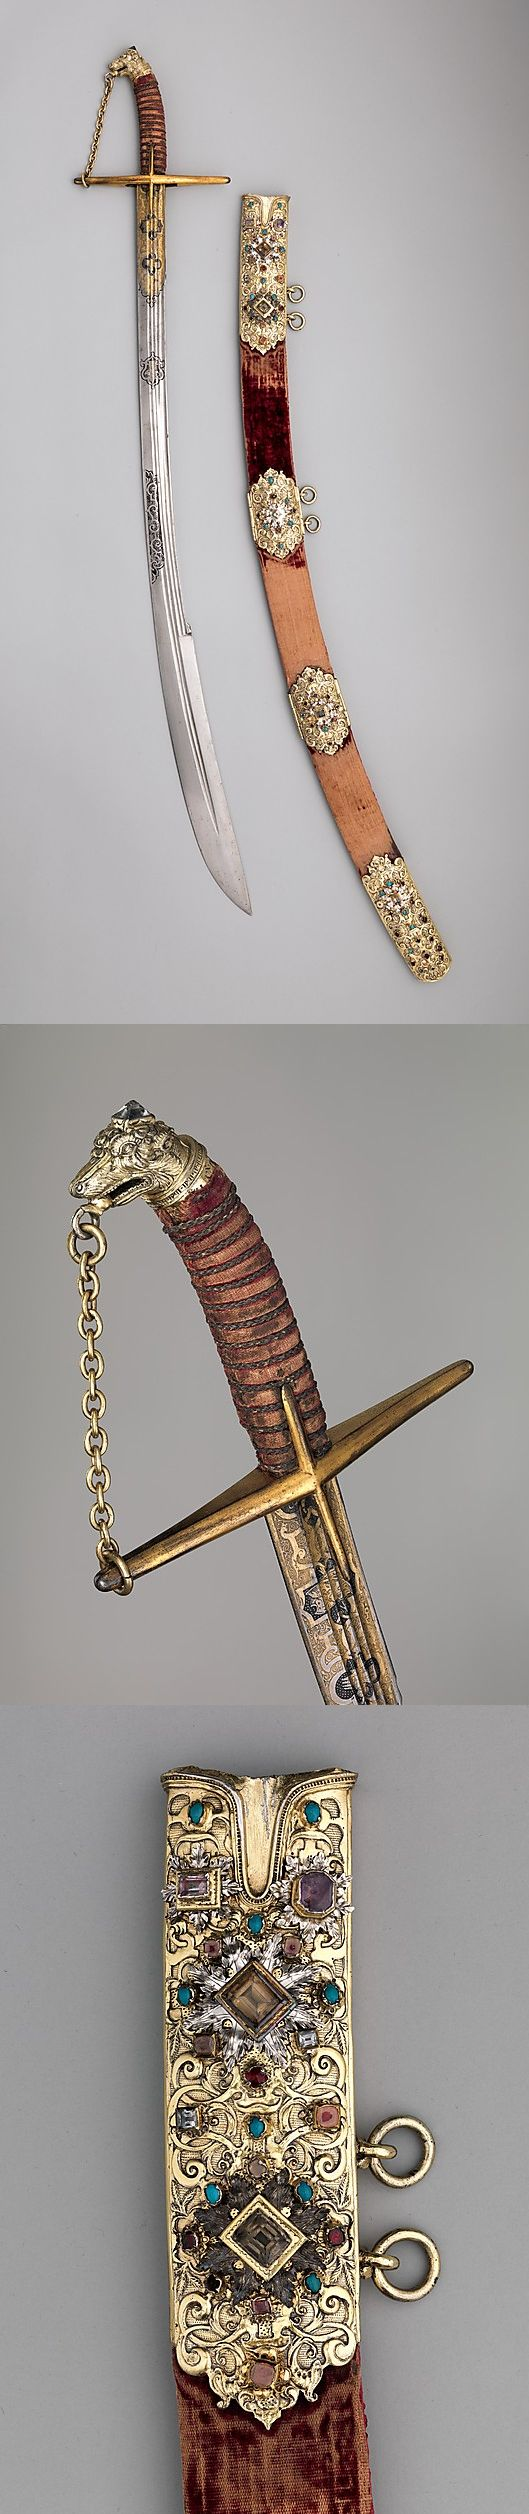 Saber with Scabbard and Carrying Belt Date: early 17th century Culture: Polish Medium: Steel, partly etched and gilt; gilt-silver, leather, wood, textile, semiprecious stones